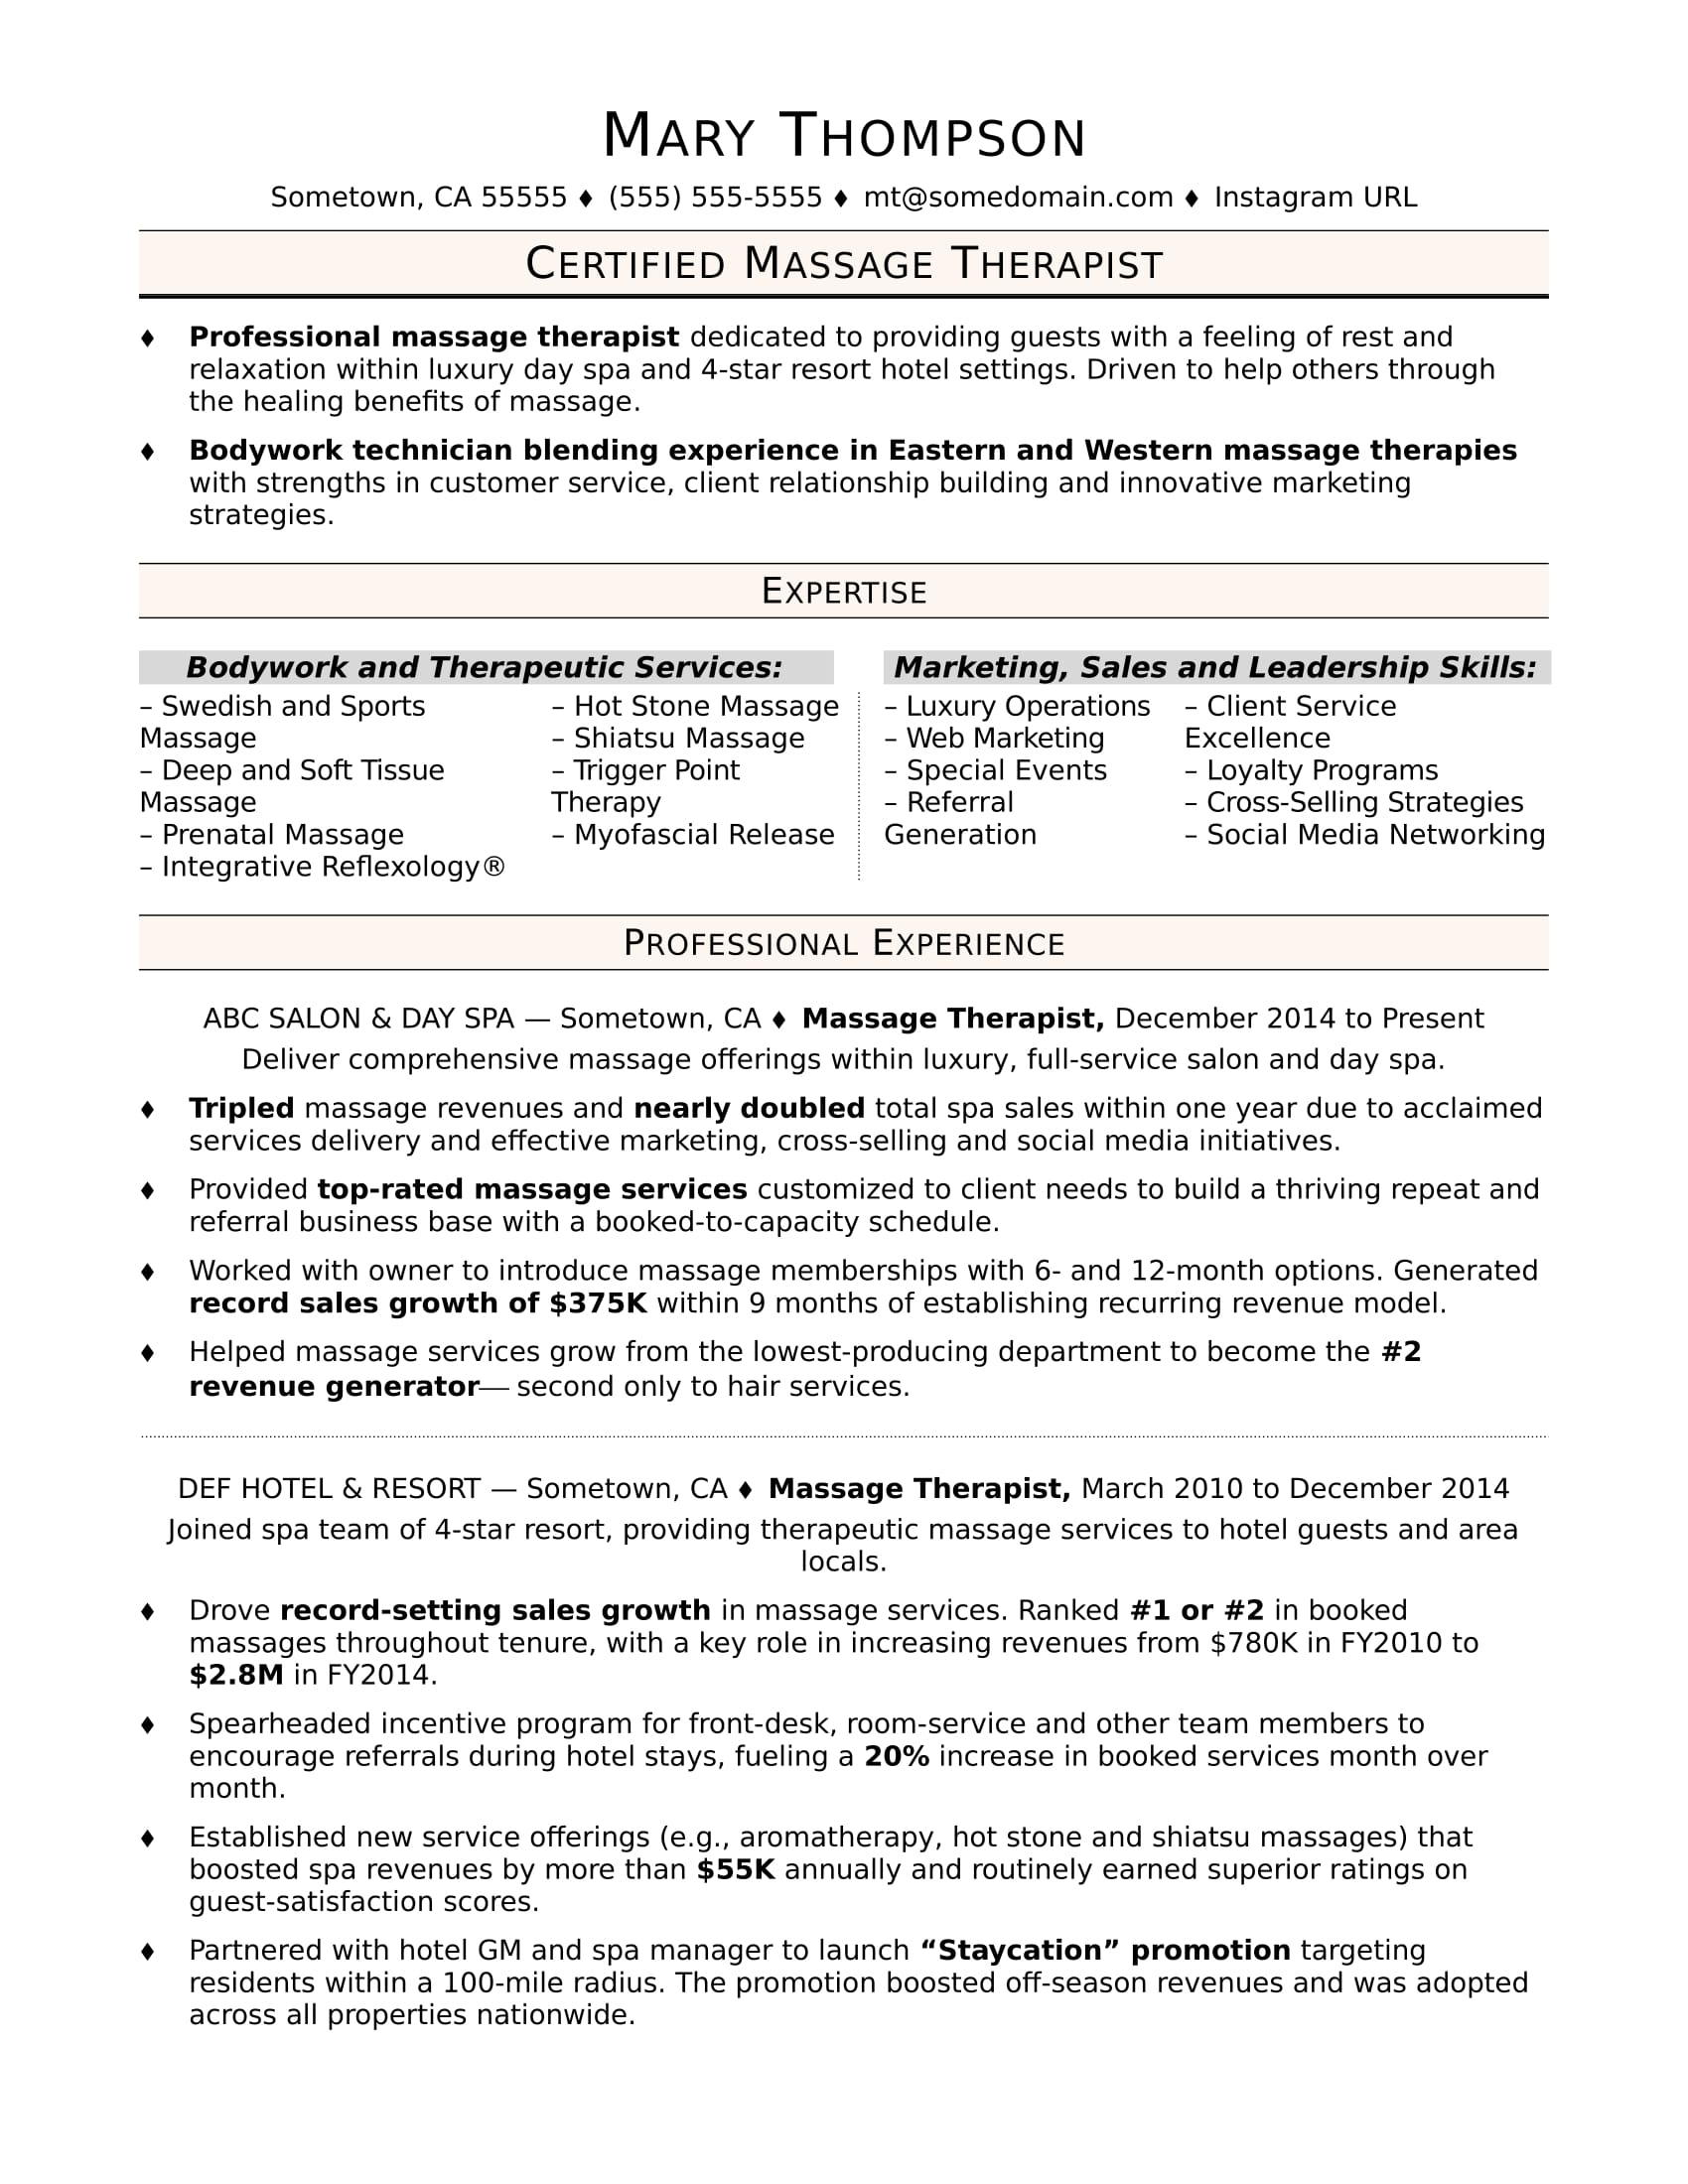 Massage Therapist Resume Sample Monstercom - Massage therapist resume template